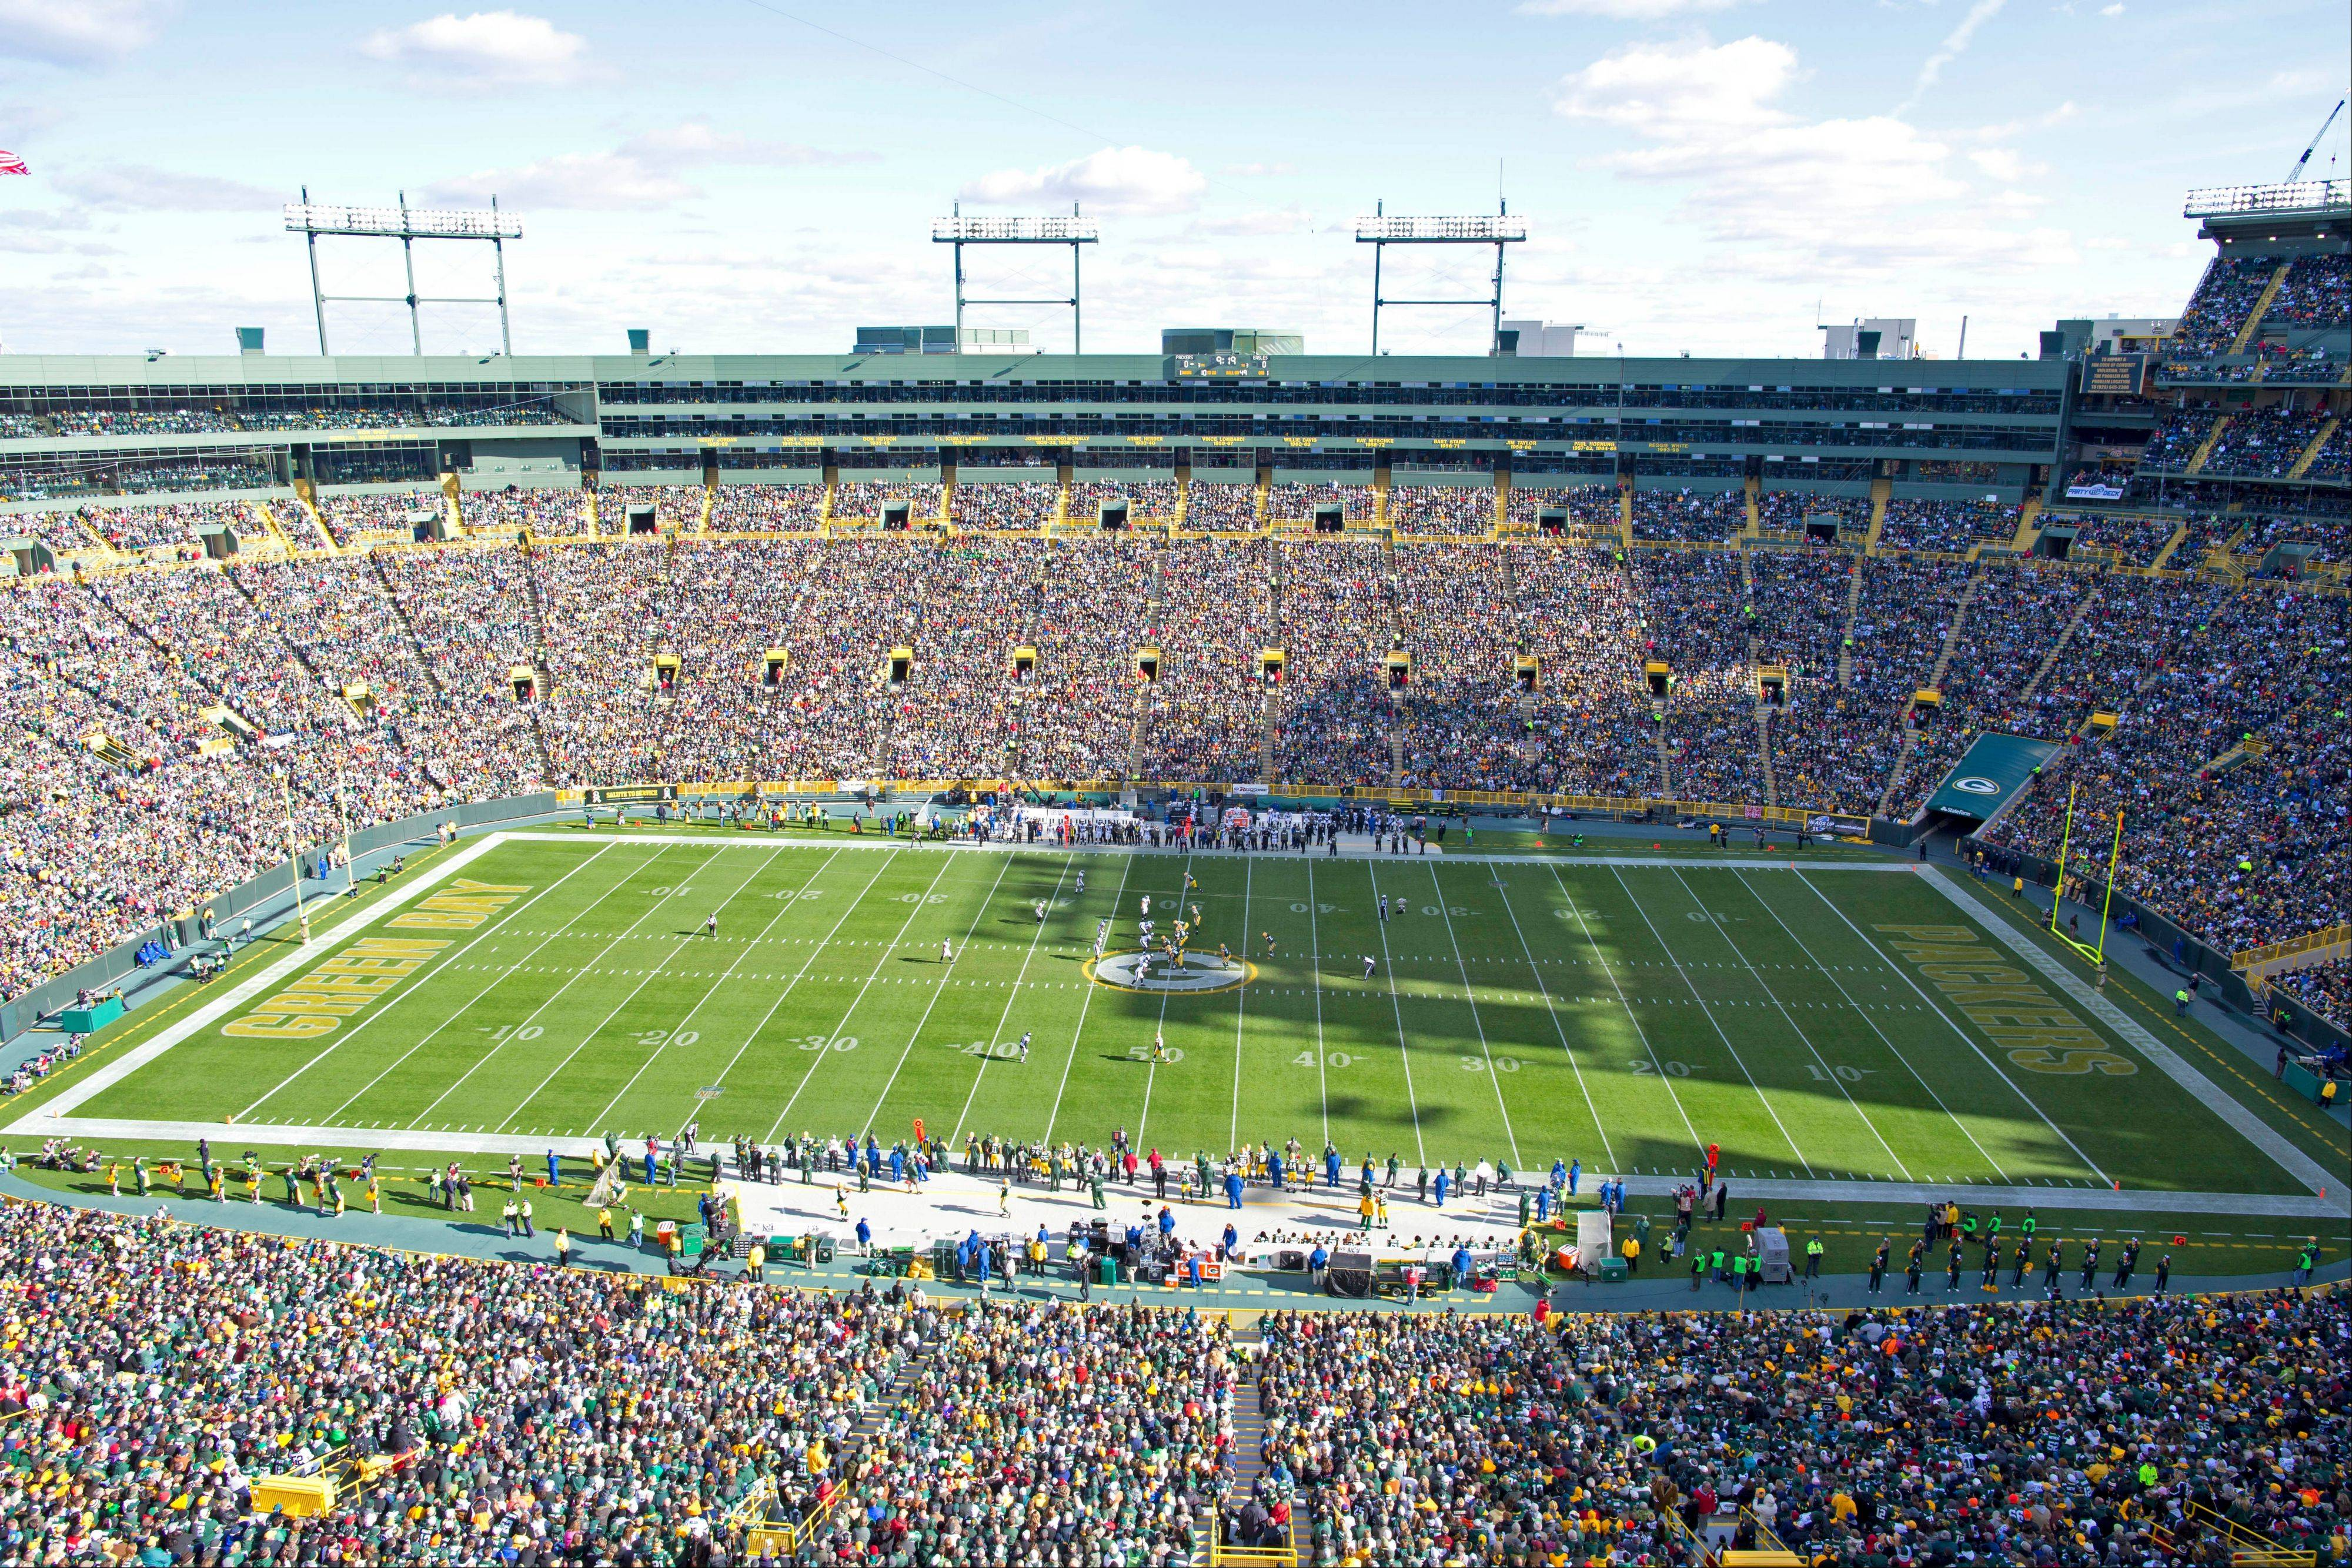 a tour of lambeau field offers a peek behind the curtain where so much of professional